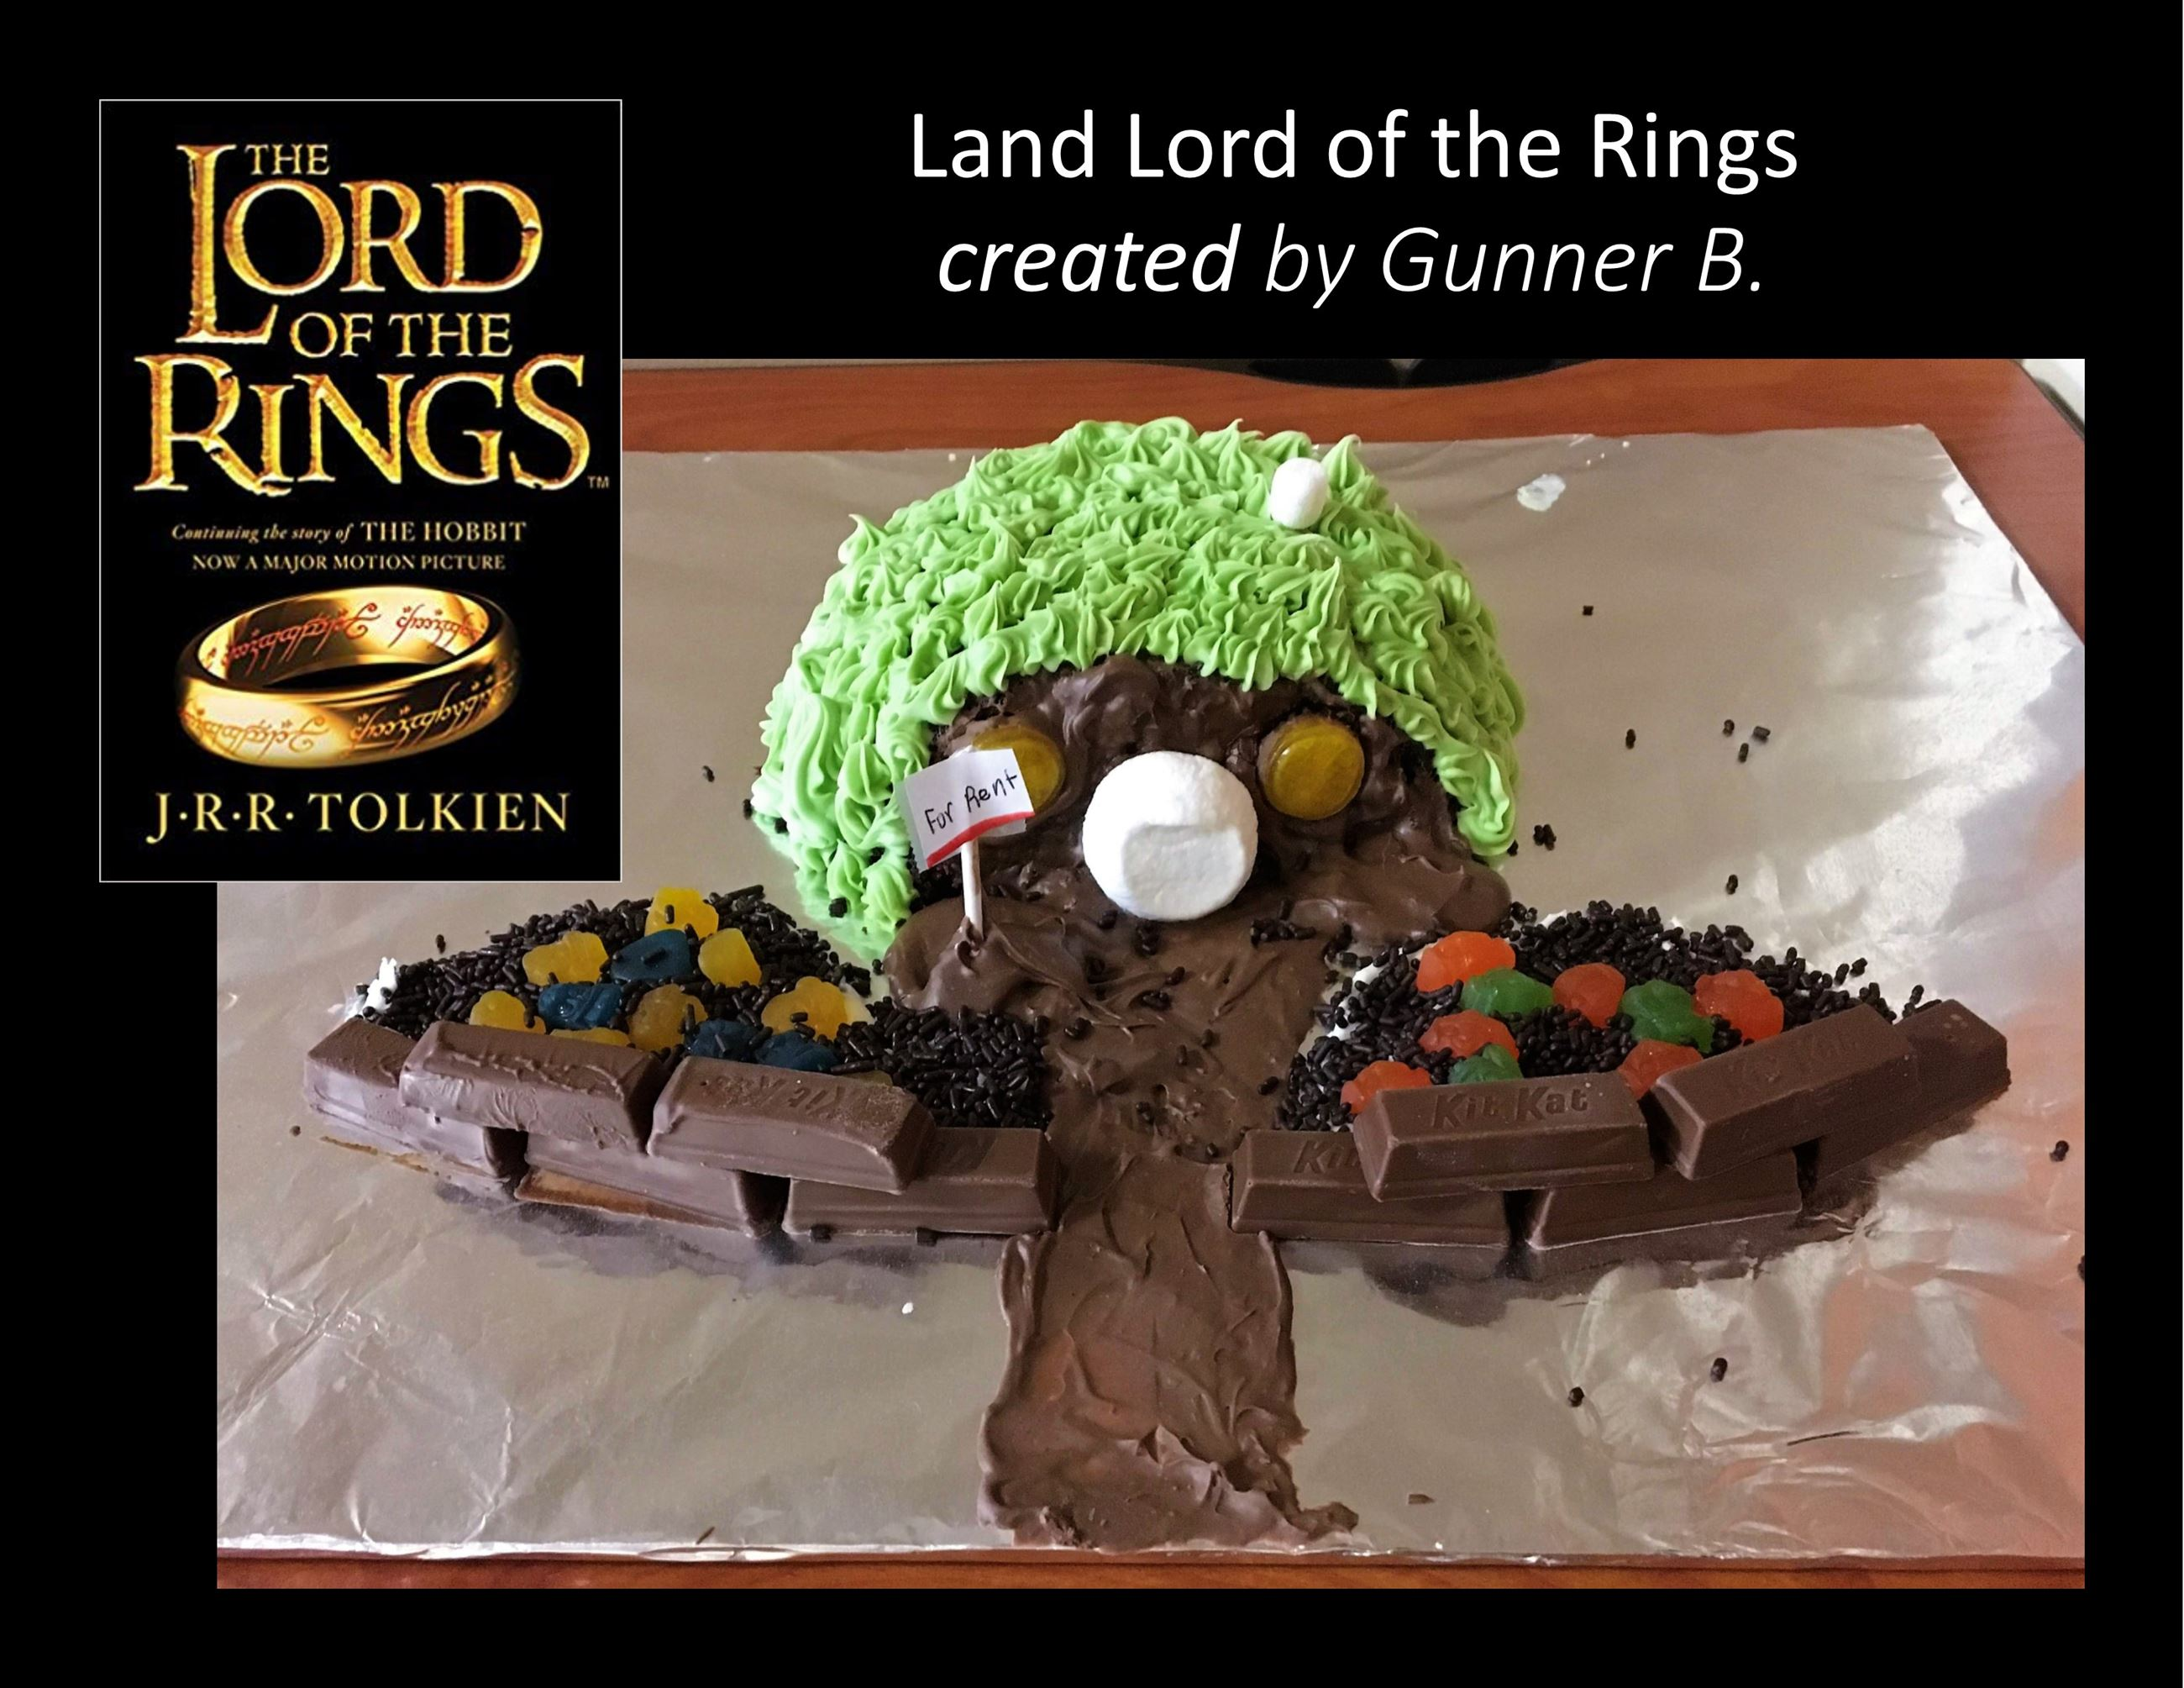 Ages 5-8 Winner: Wittiest/Funniest/Punniest